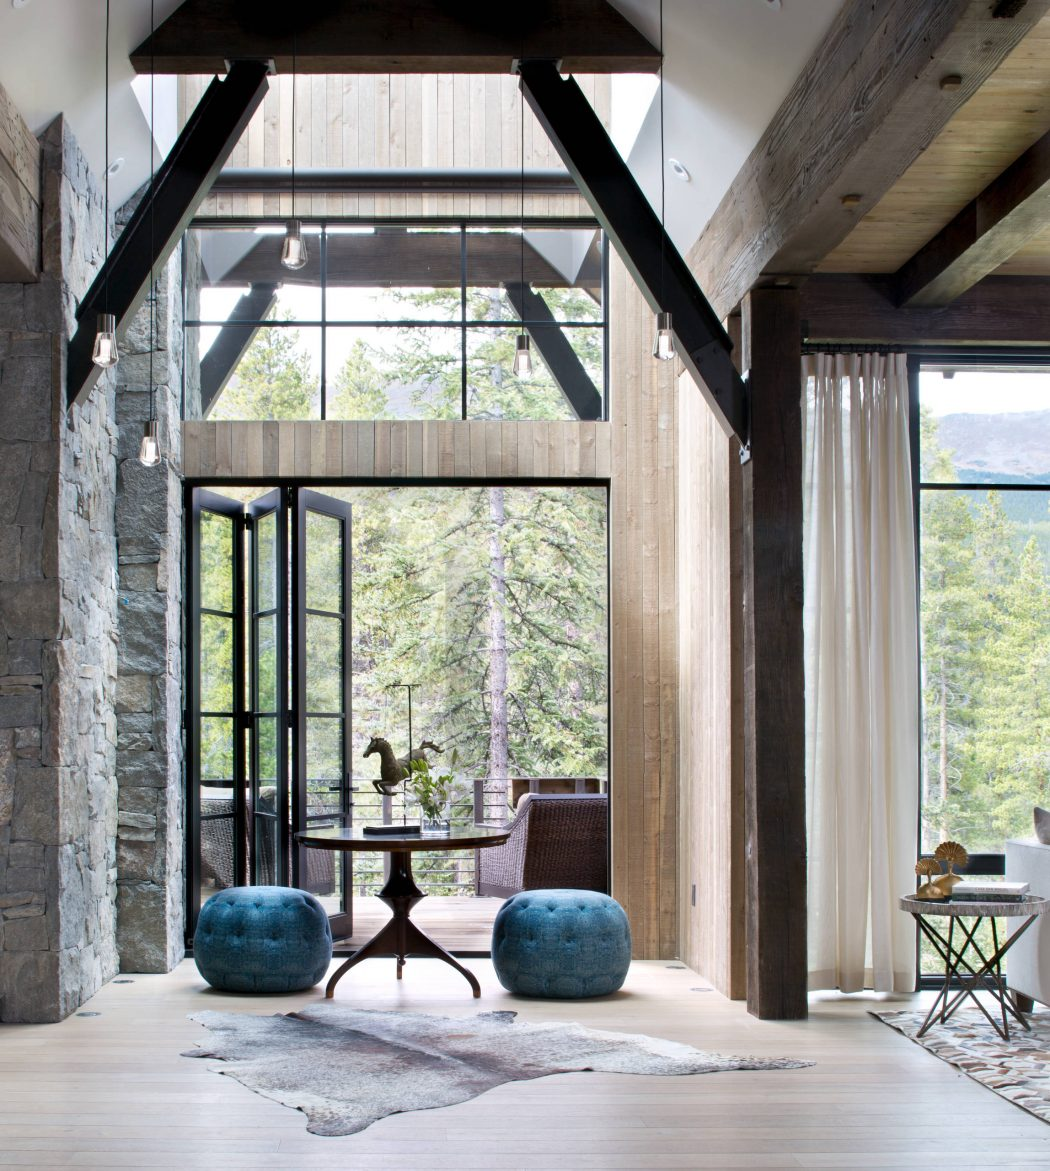 Mountain Chalet by Andrea Schumacher Interiors - https://t.co/vLcmgvcb4X https://t.co/MZ9SMjjO6P